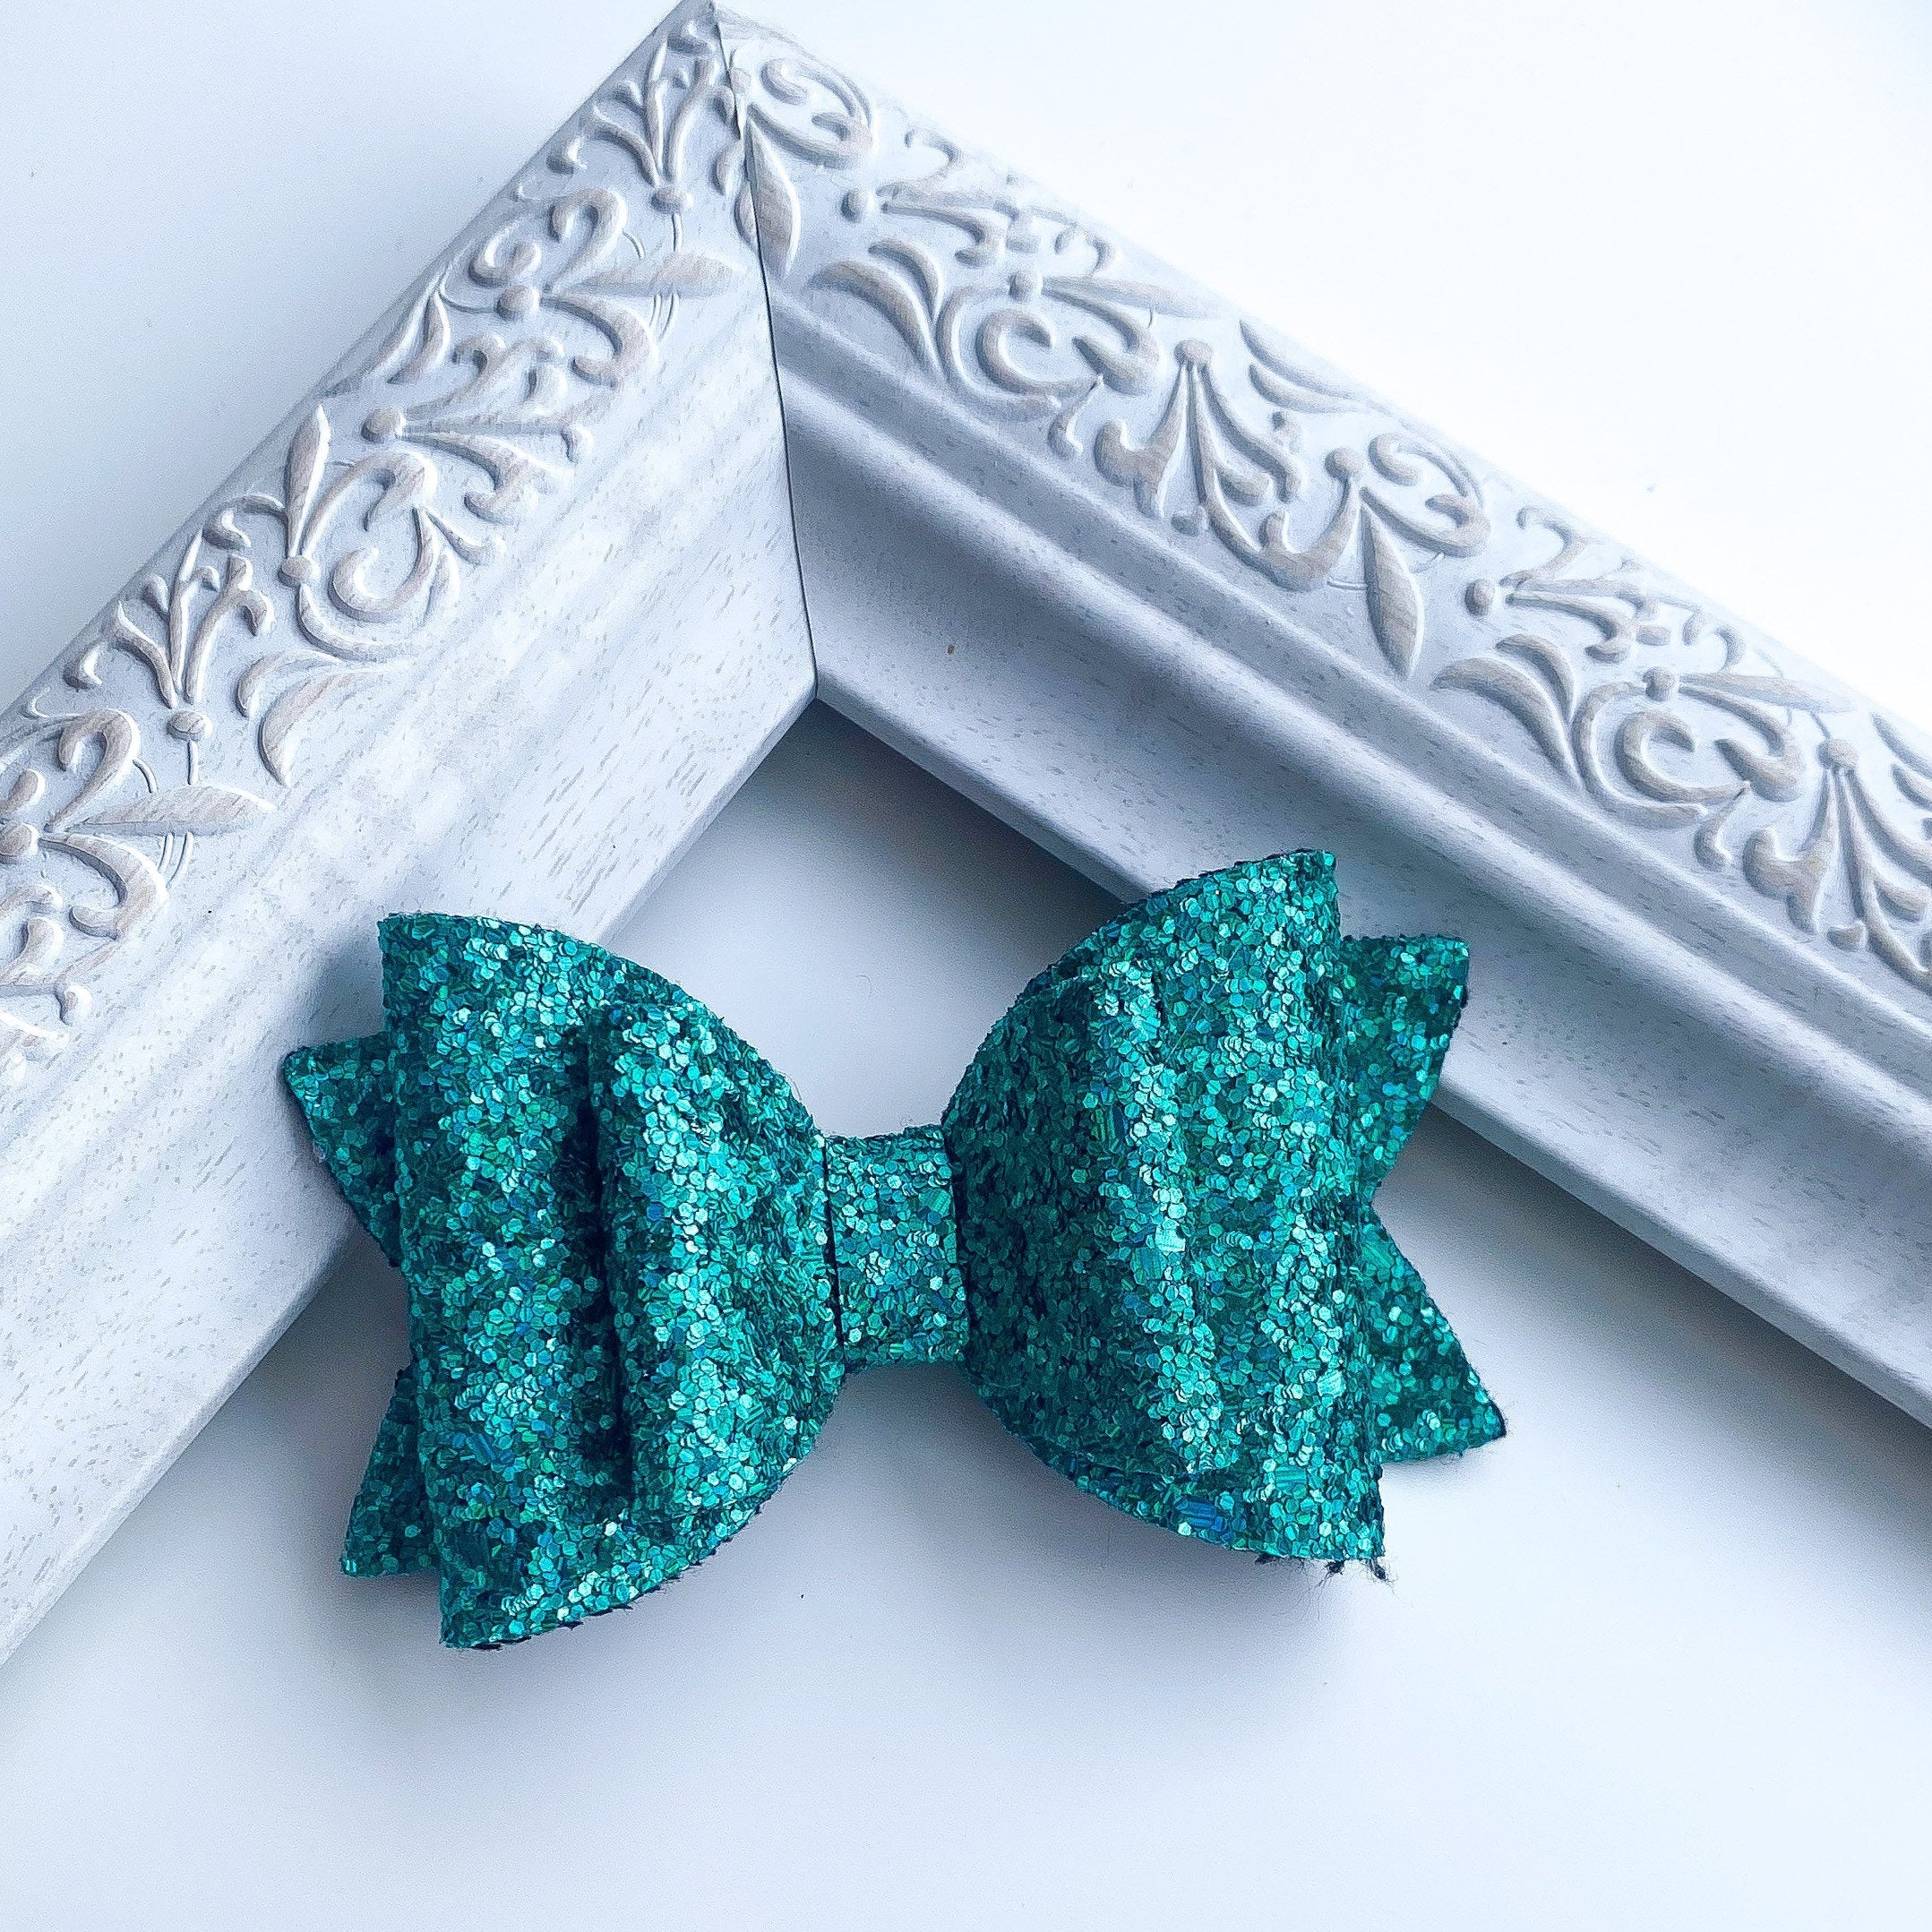 Emerald // Specialty Glitter // Spruce